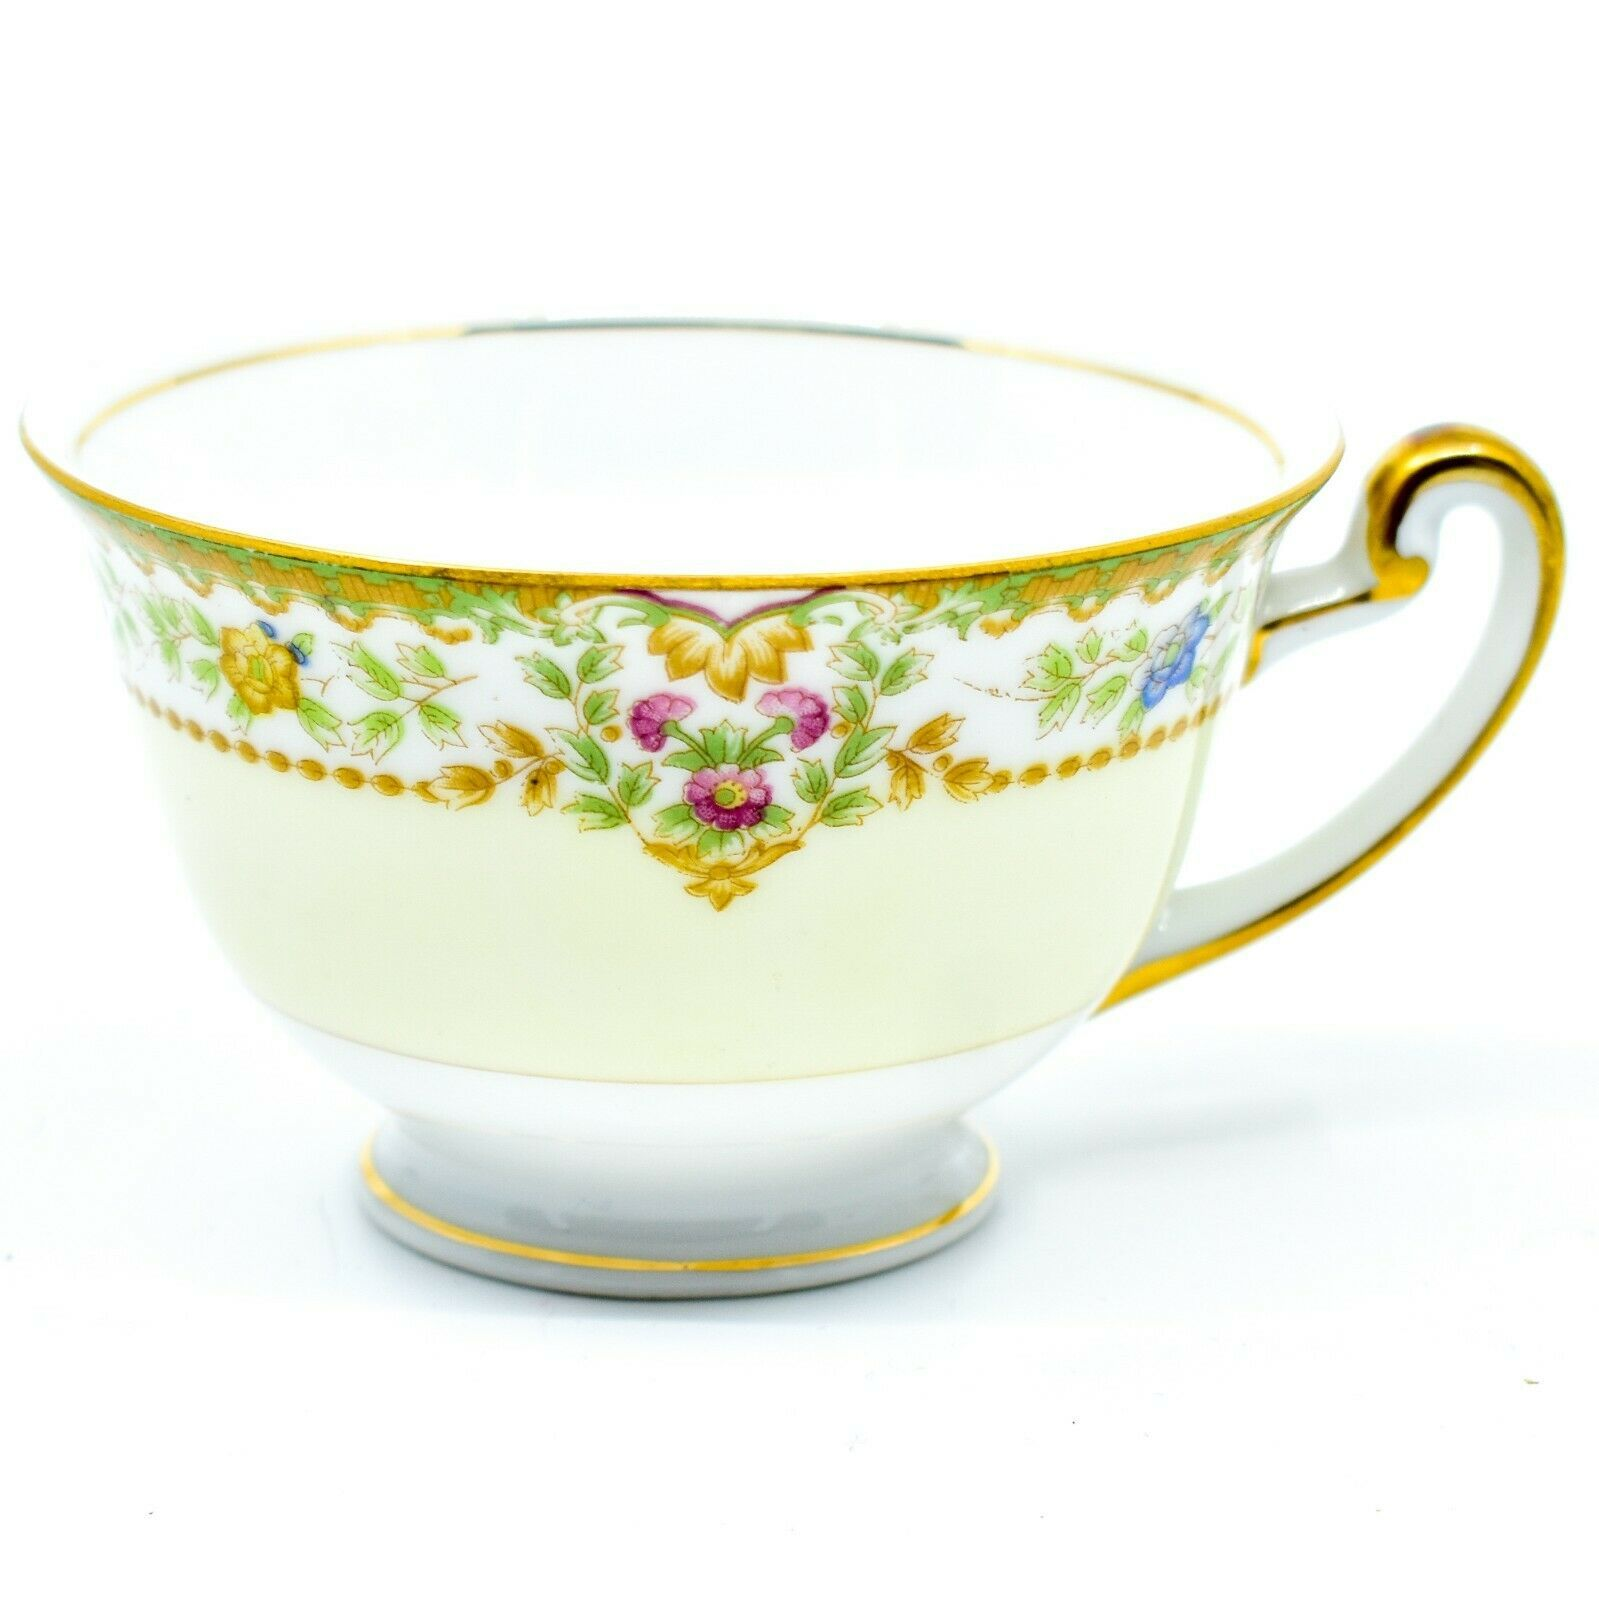 Meito China Blue Yellow & Pink Flower Gold Accent Teacup Tea Cup